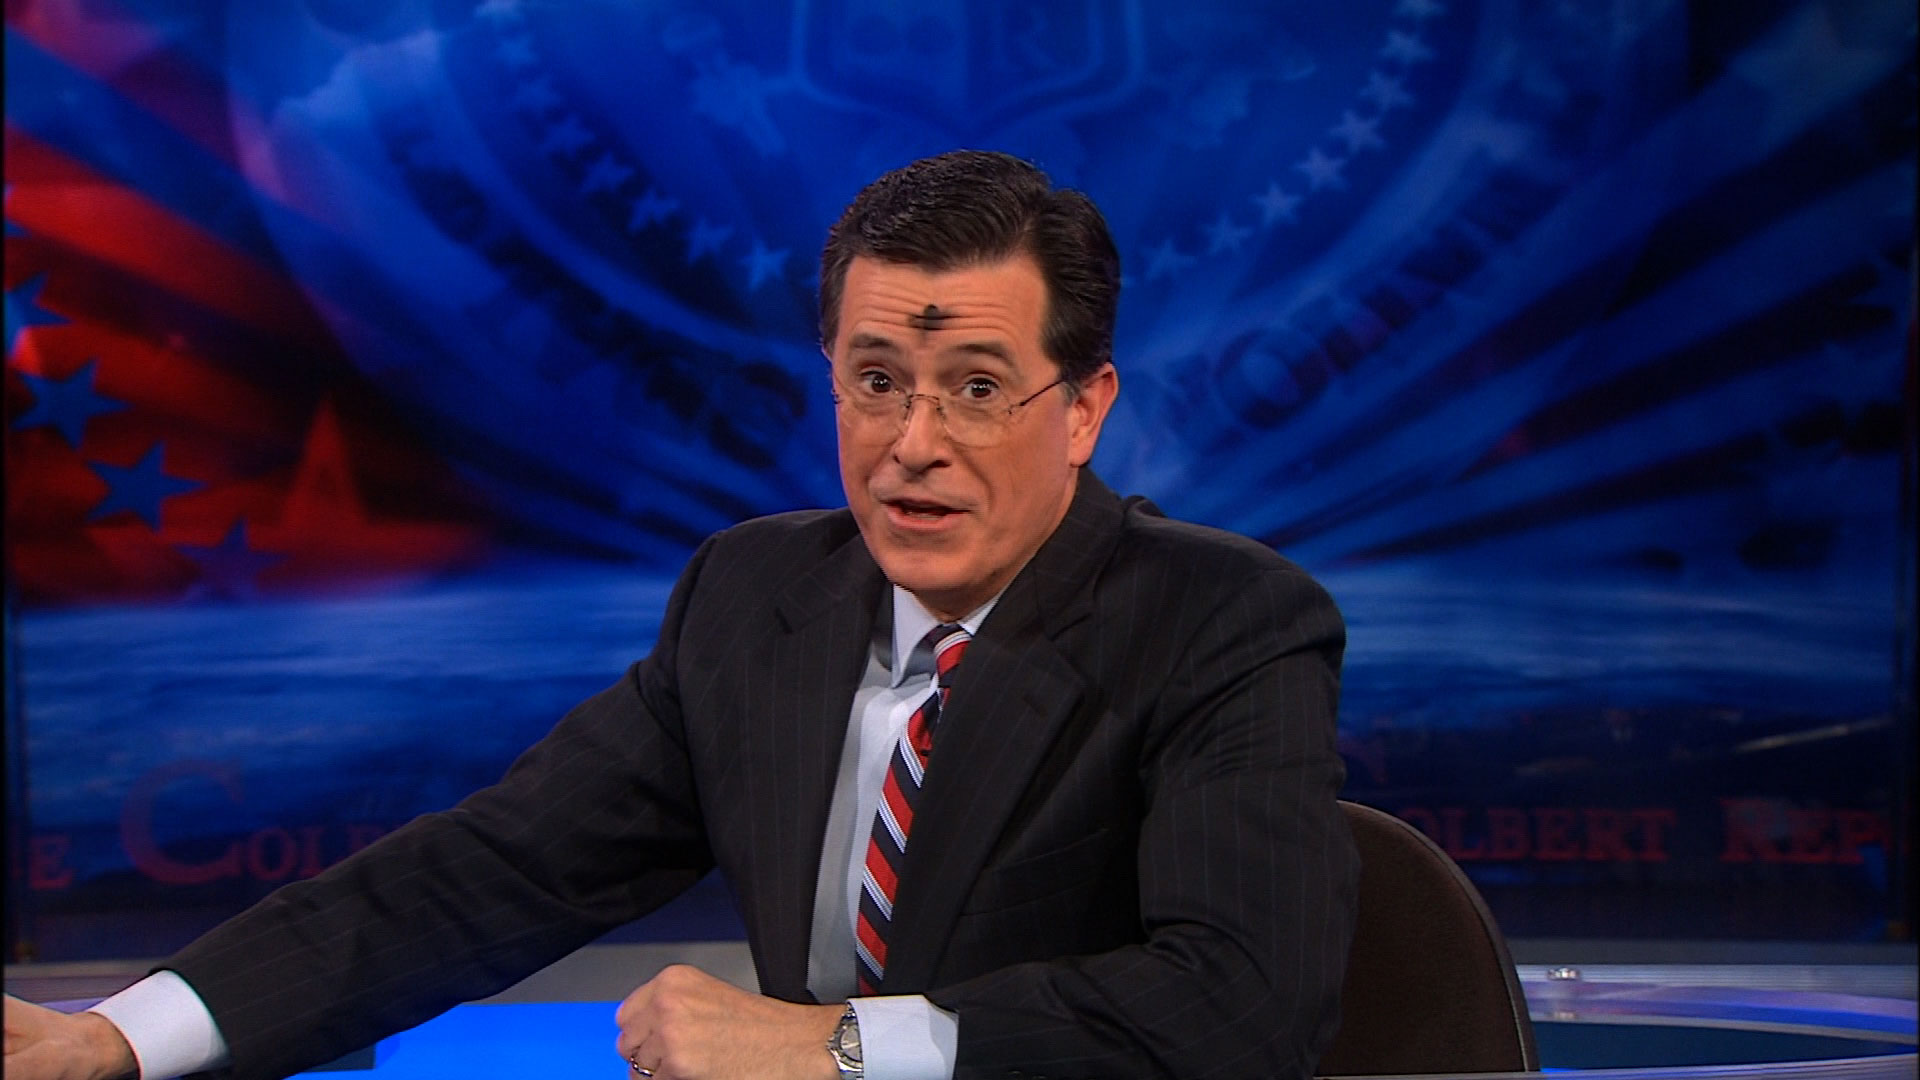 Stephen Colbert wallpaper 1920x1080 65043 1920x1080